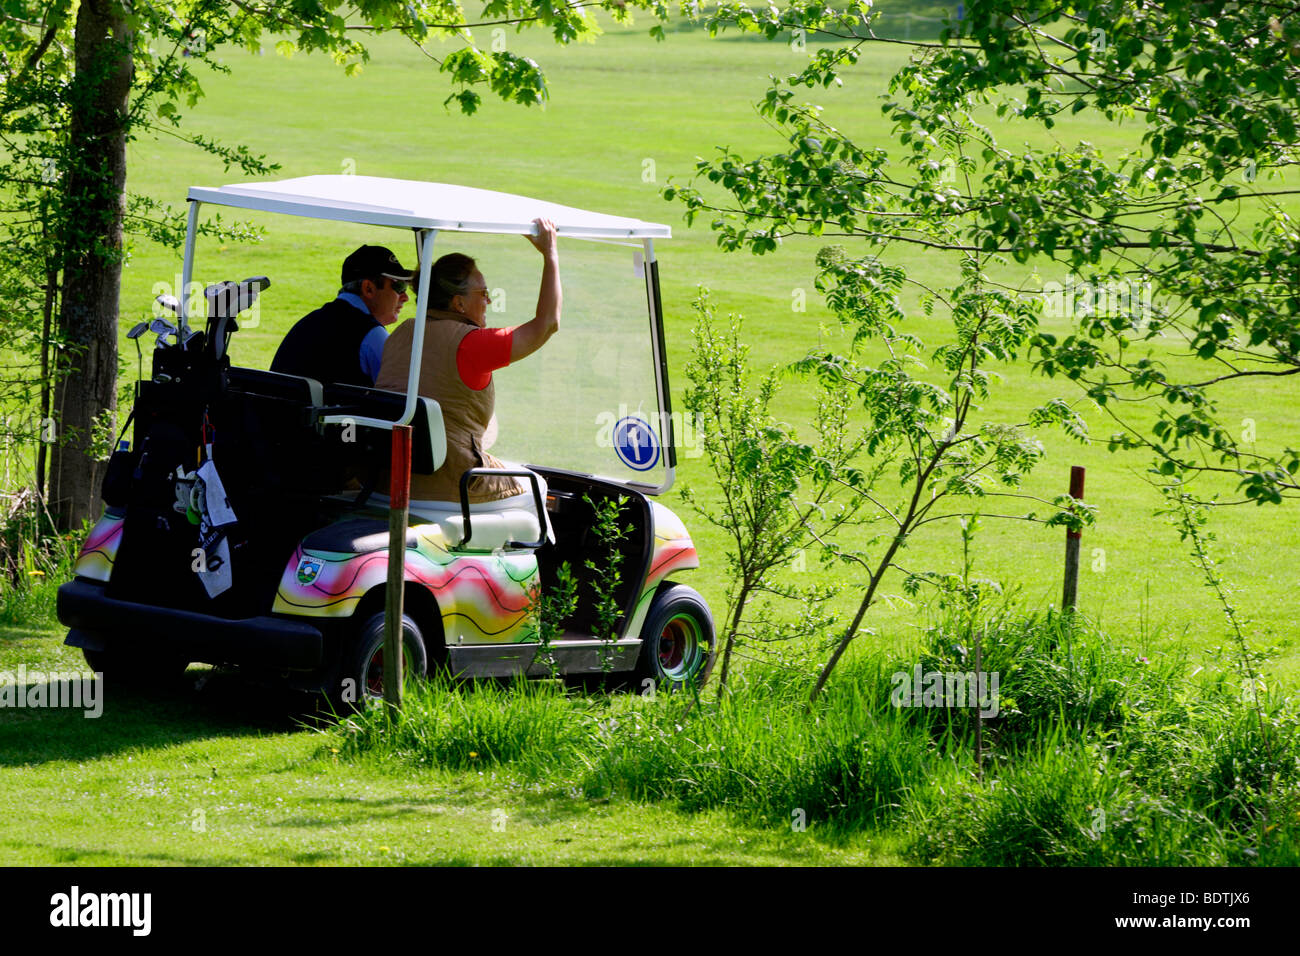 People Riding in a Colourful Golf Buggy on Course - Stock Image